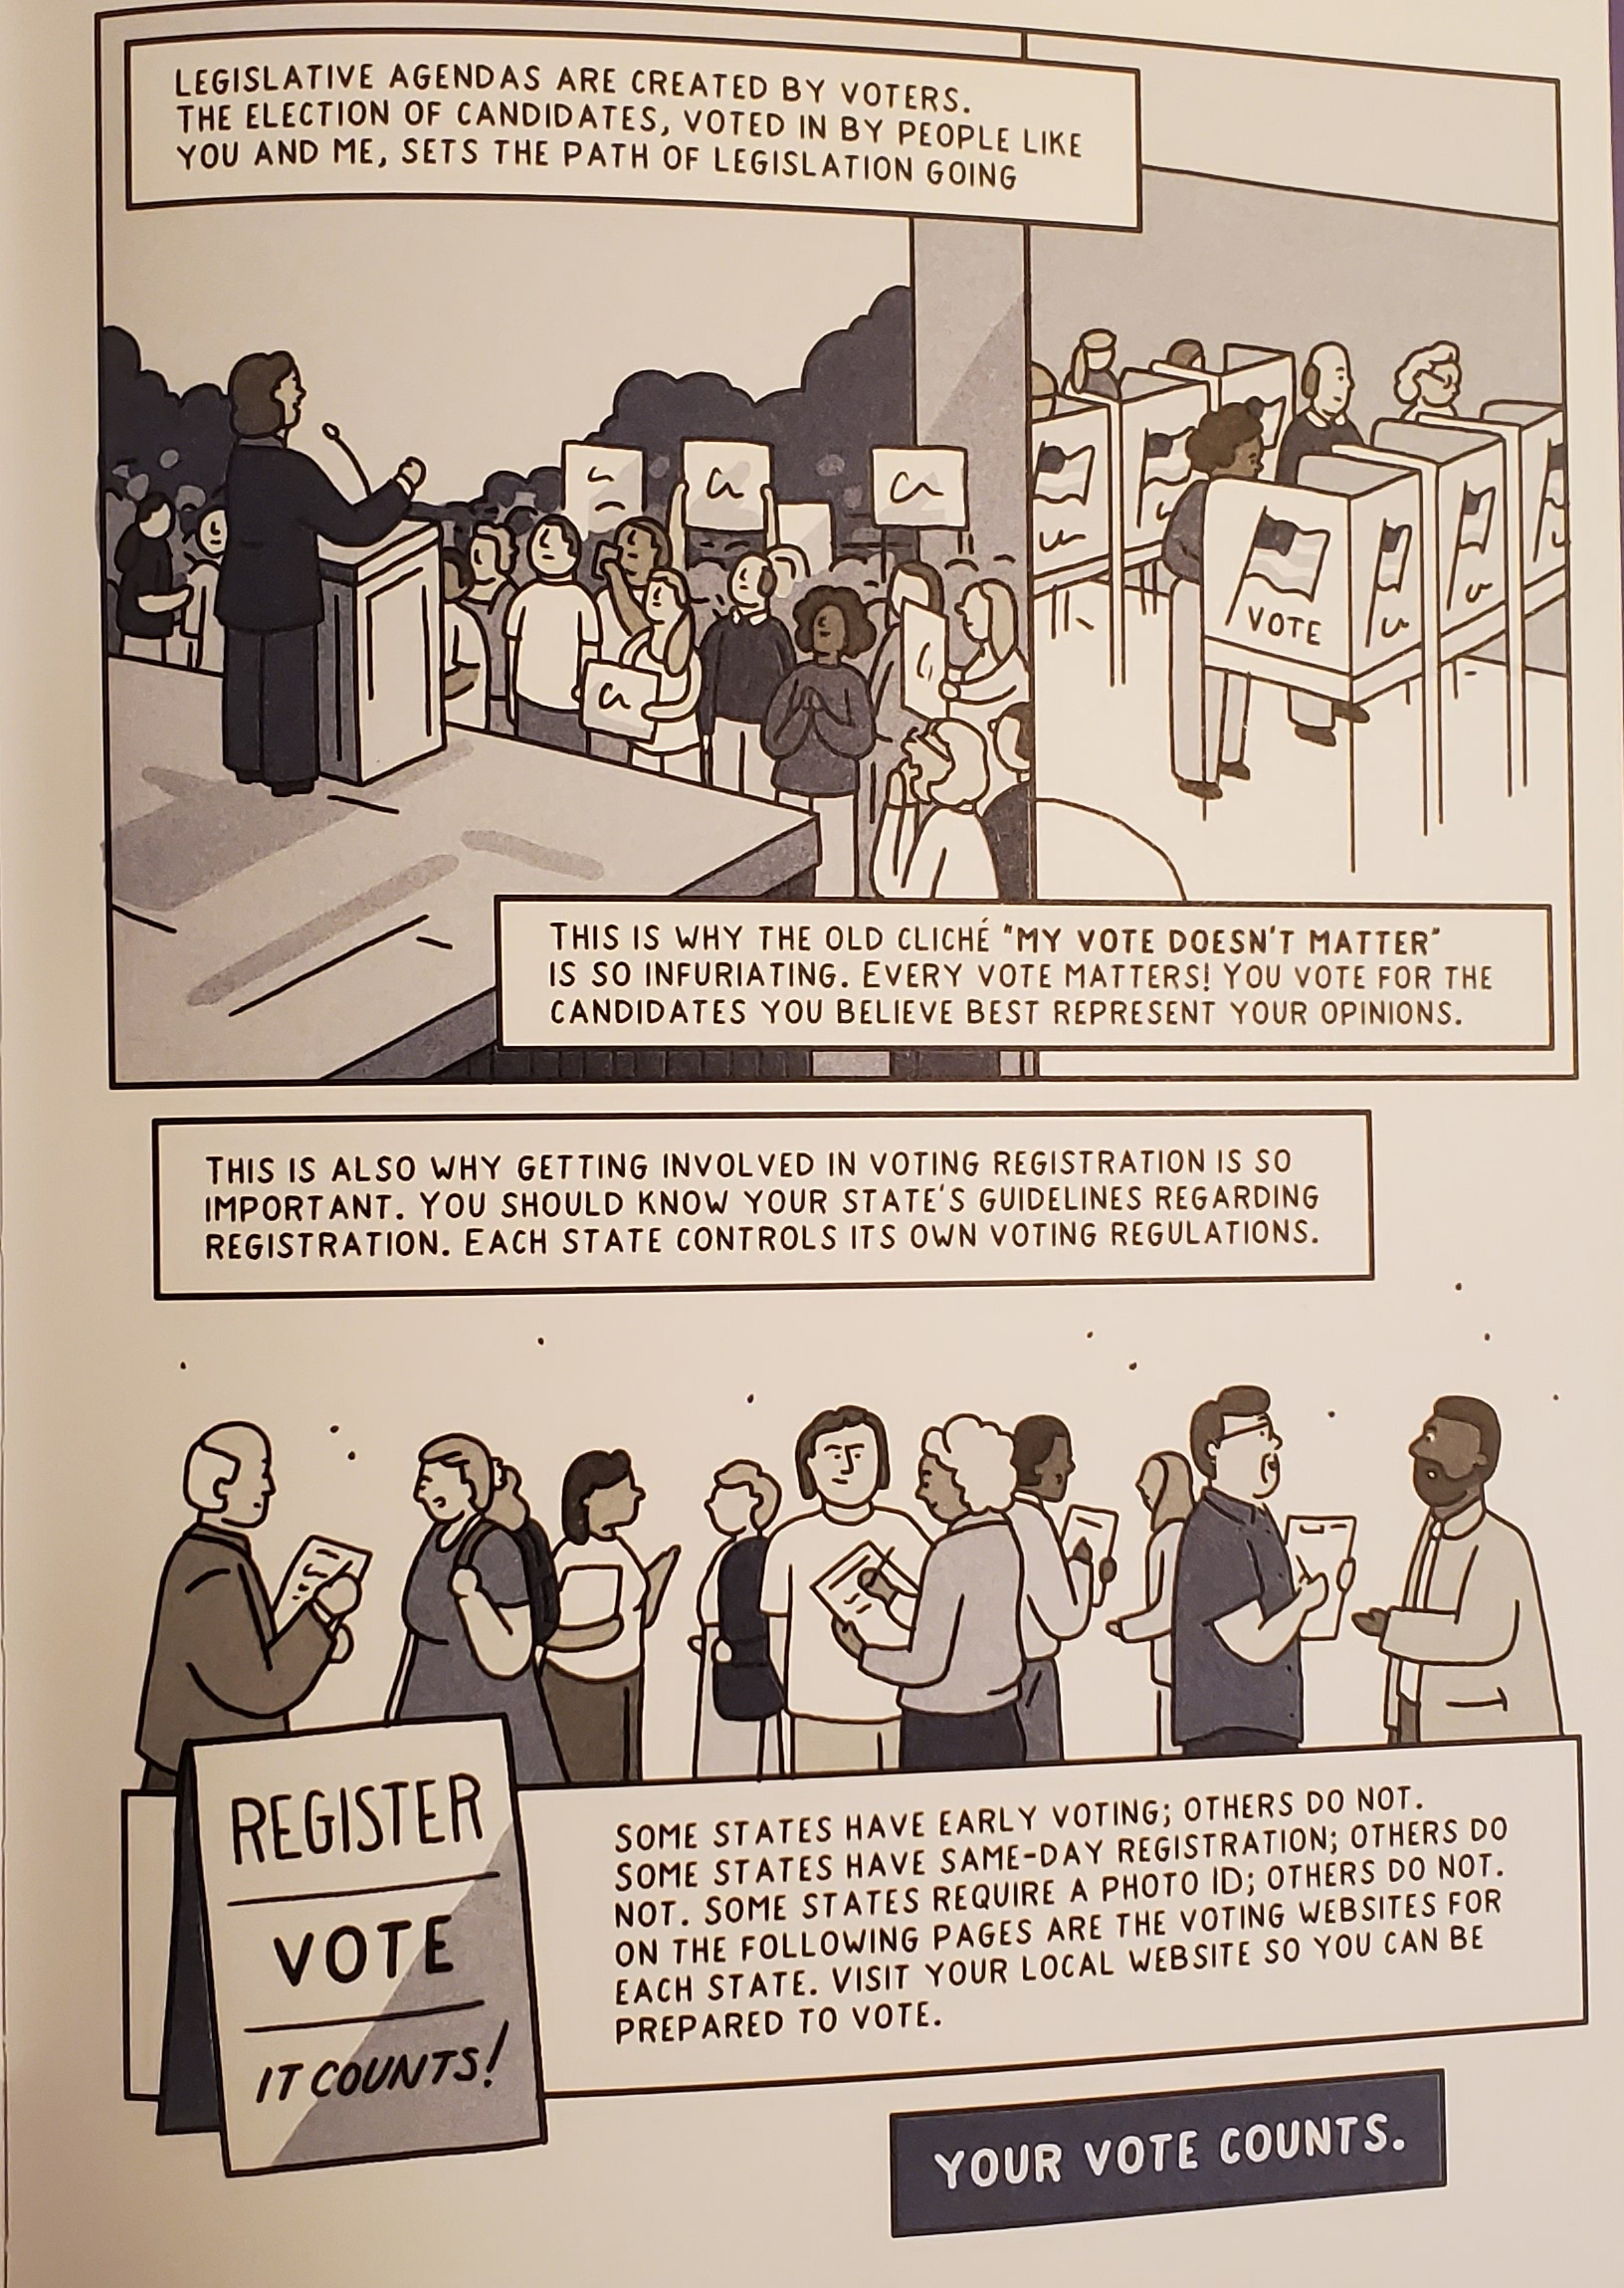 Panel from Drawing the Vote: An Illustrated Guide to Voting in America, that discusses why every vote matters